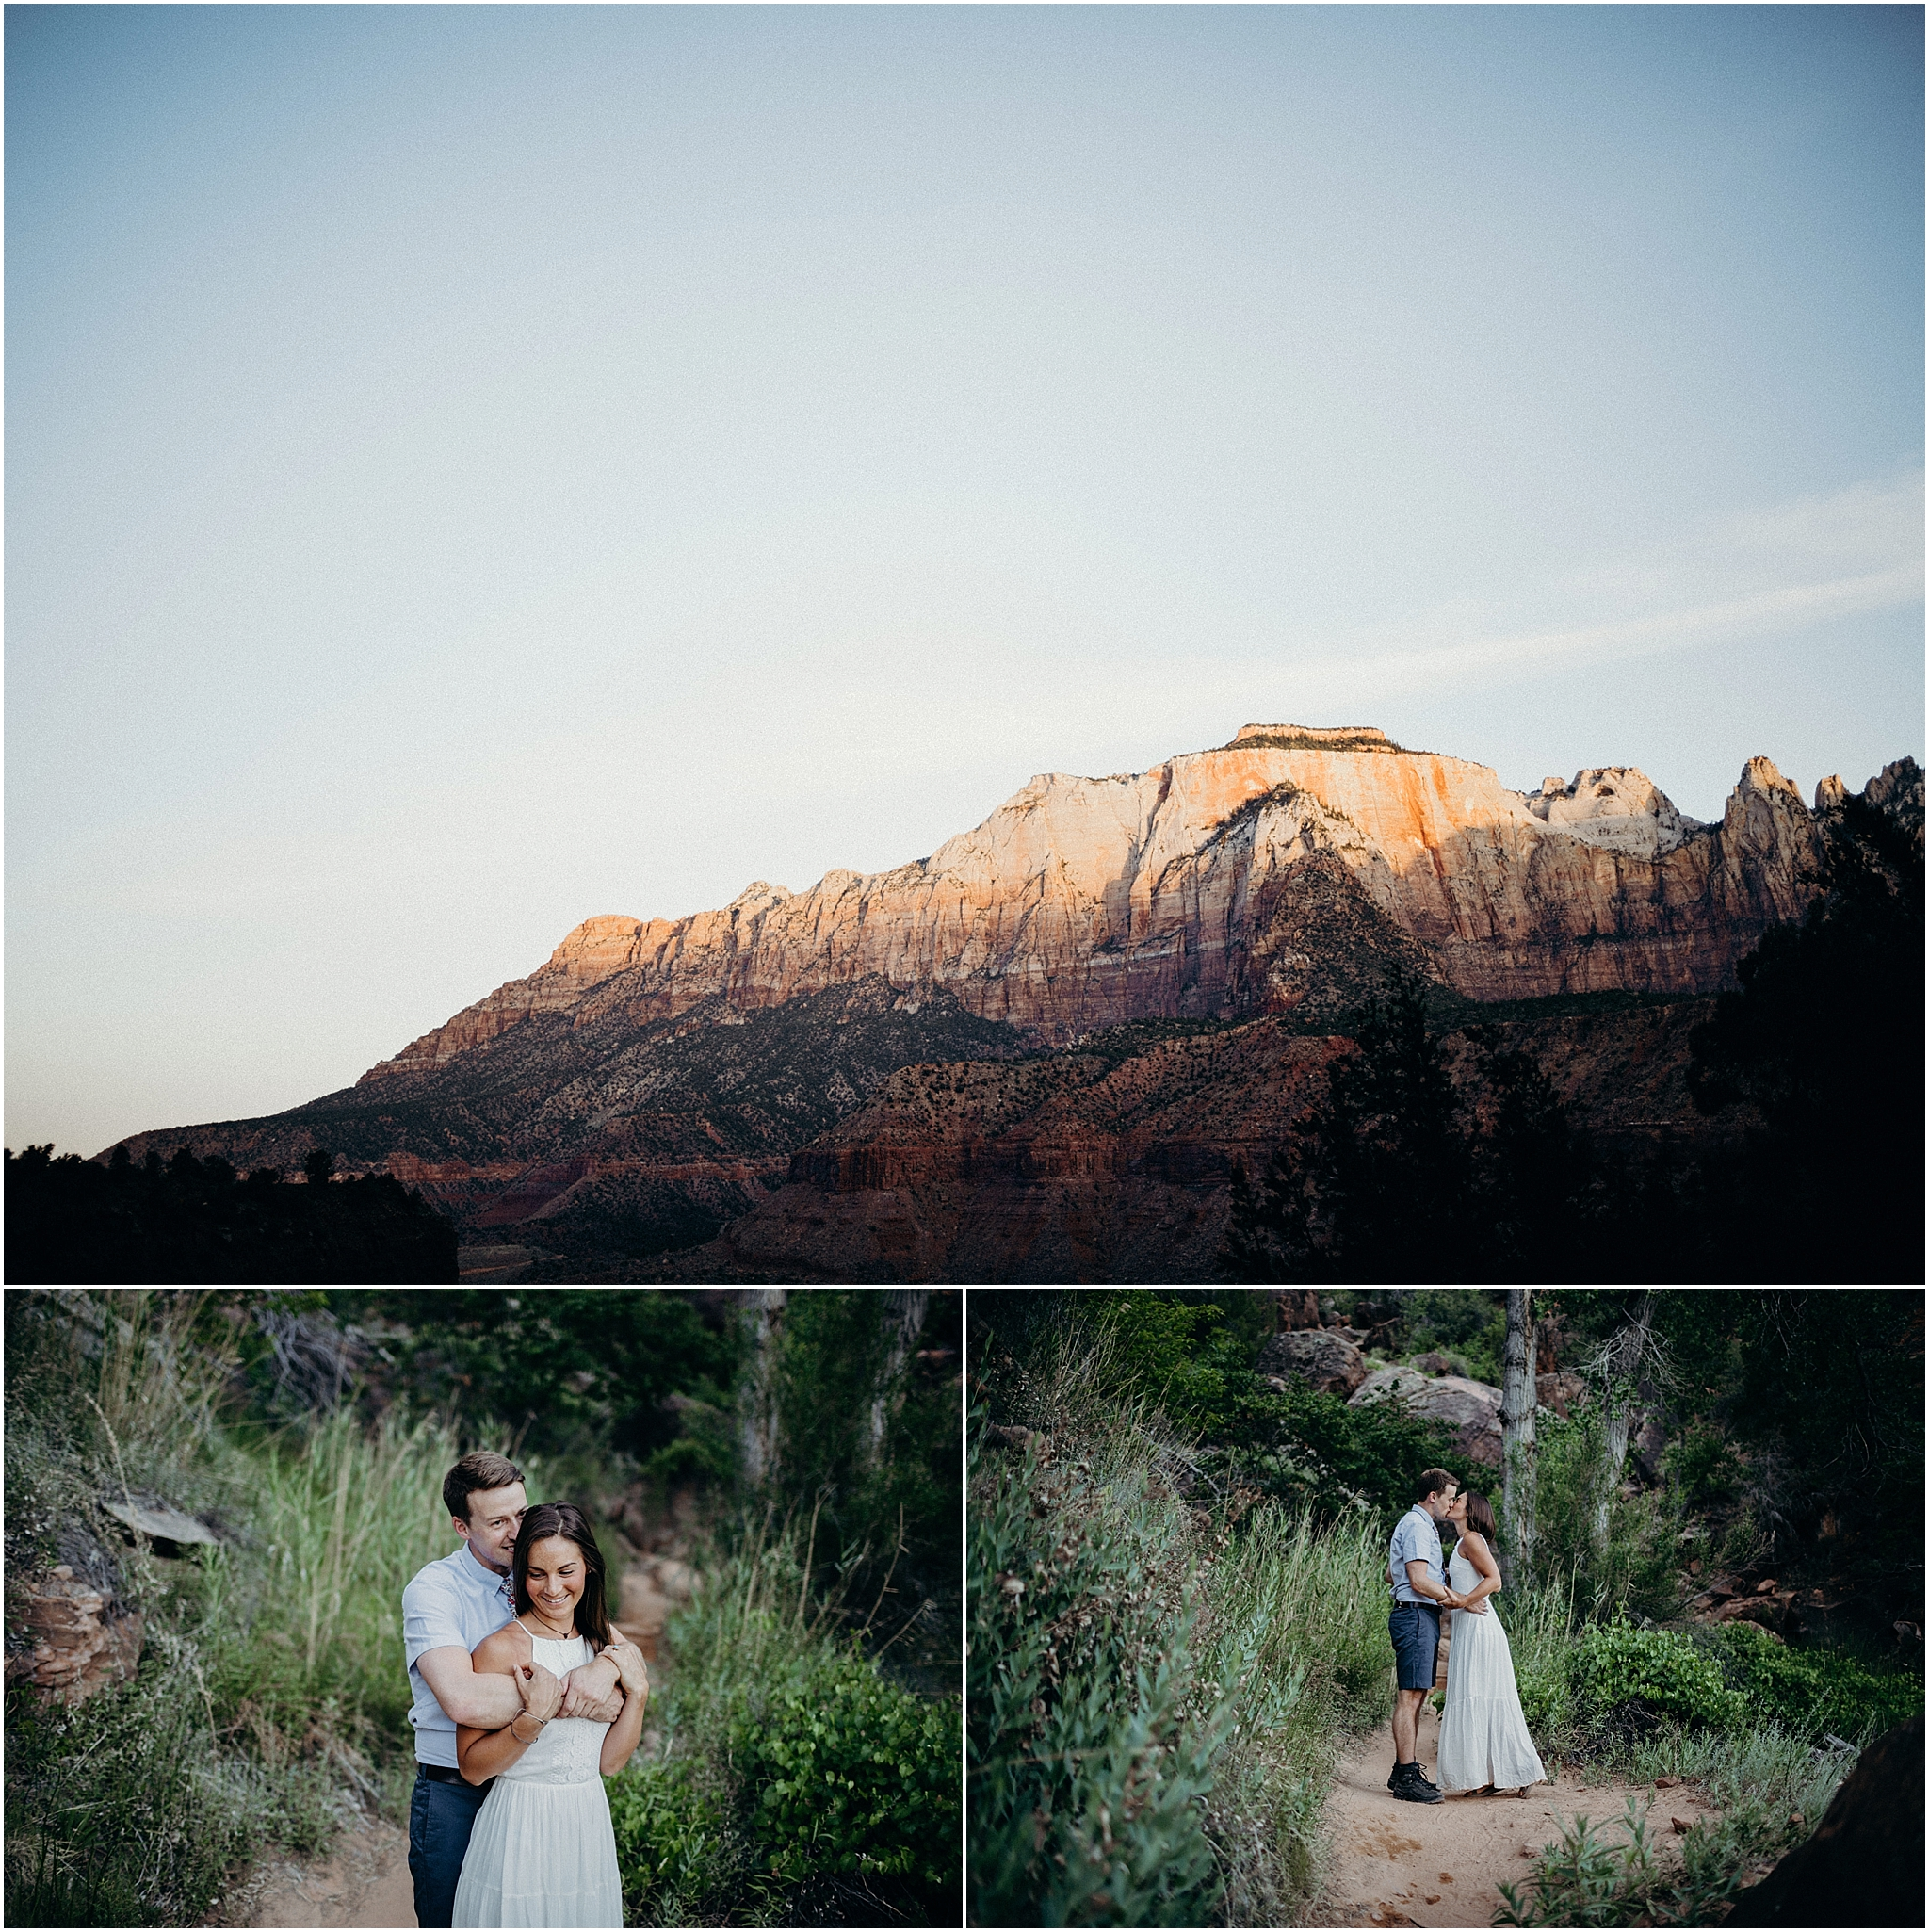 zion national park adventure engagement session zion portraits utah photographer arizona photographer 19.jpg